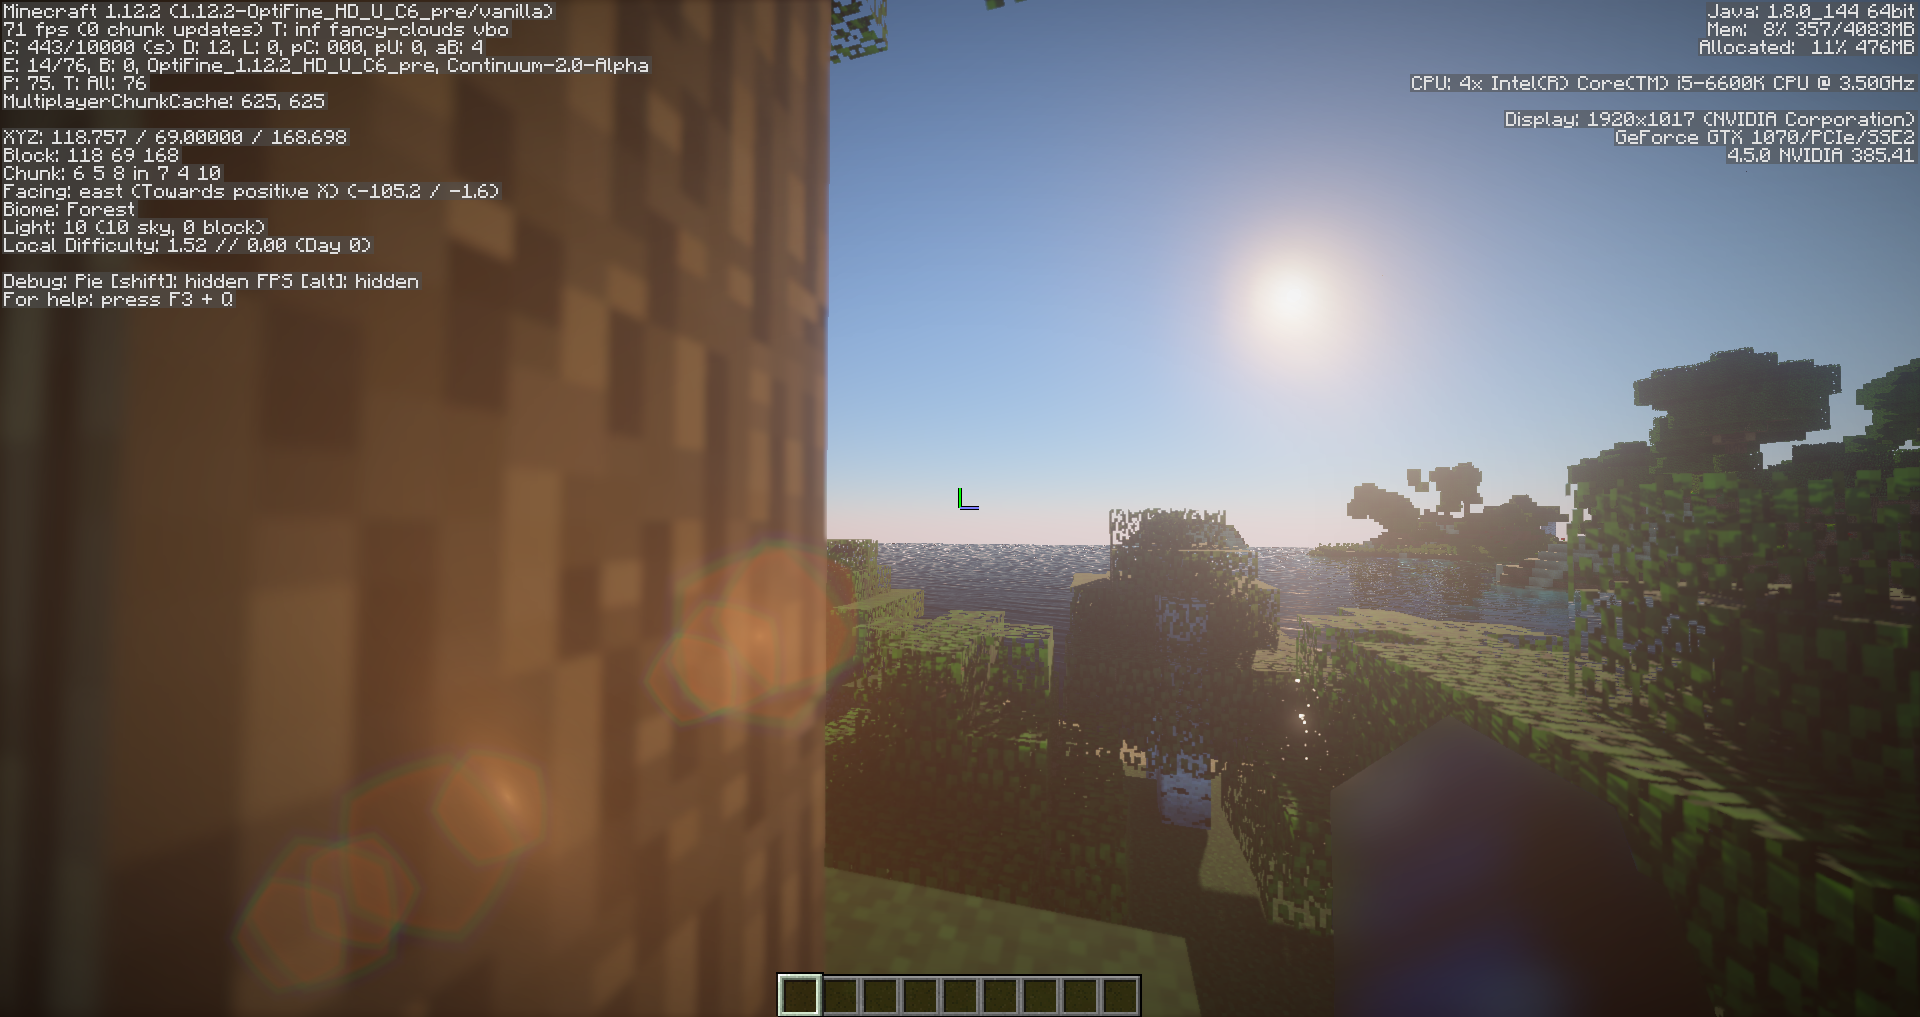 This is the FPS at which the Volumetric Renderer found in blog post 1 is disabled